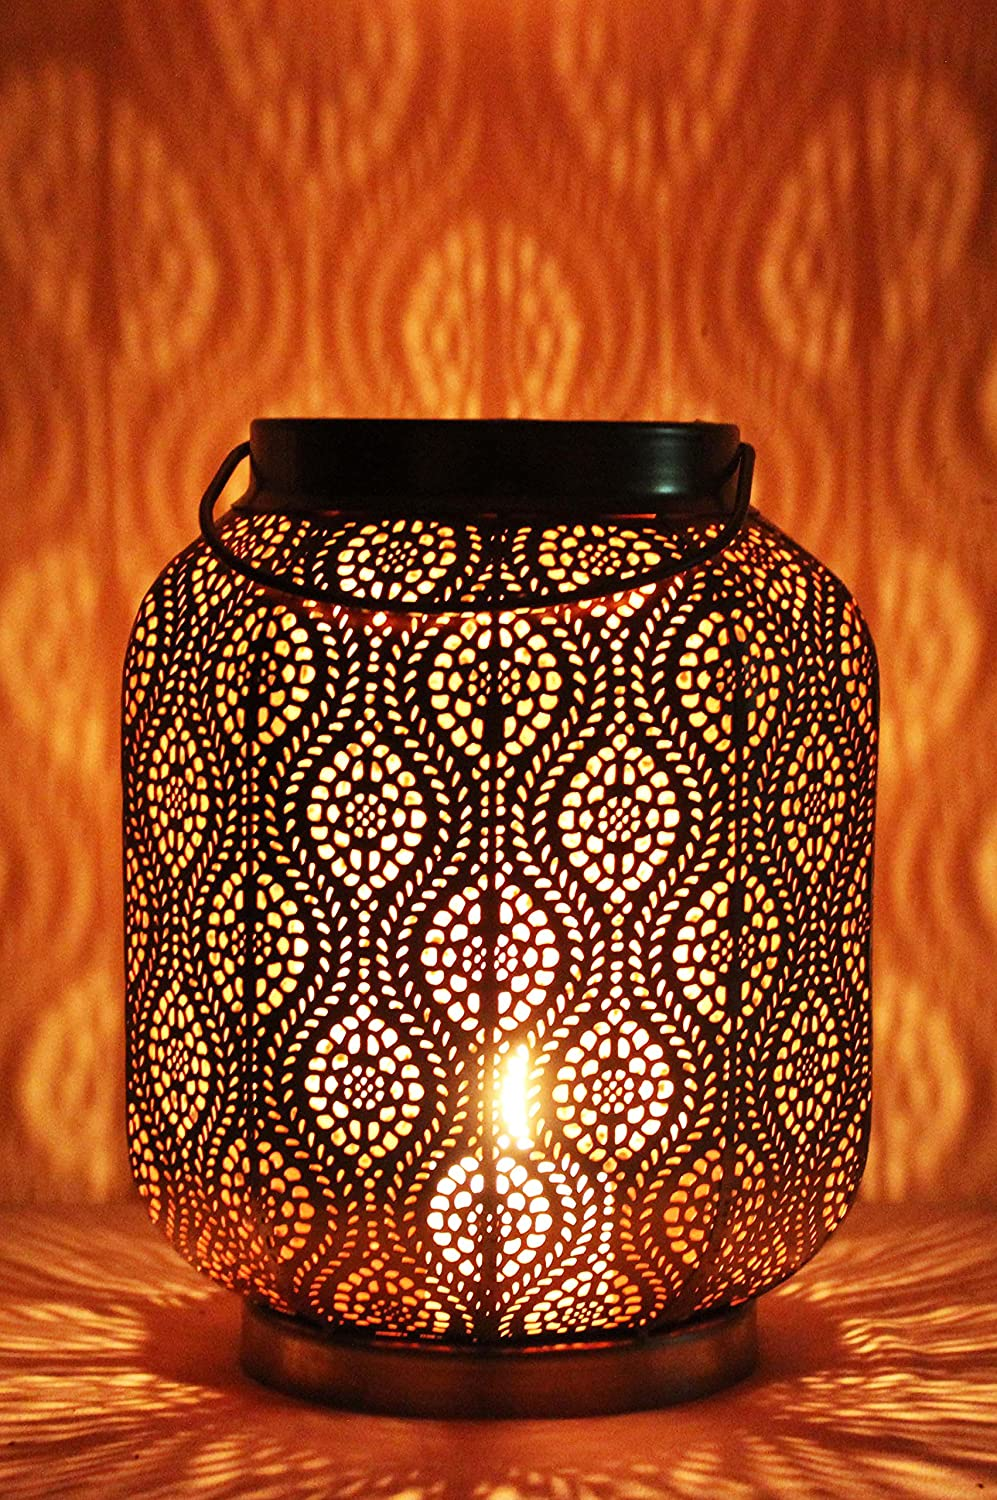 Moroccan Vintage Lantern Lights Lamp Baghira 26cm Black Large | Oriental Garden Outdoor Hanging Lanterns for Candles as Decorations | Arabian Indoor Candle Tea Light Holders as Indian Party Home Decor